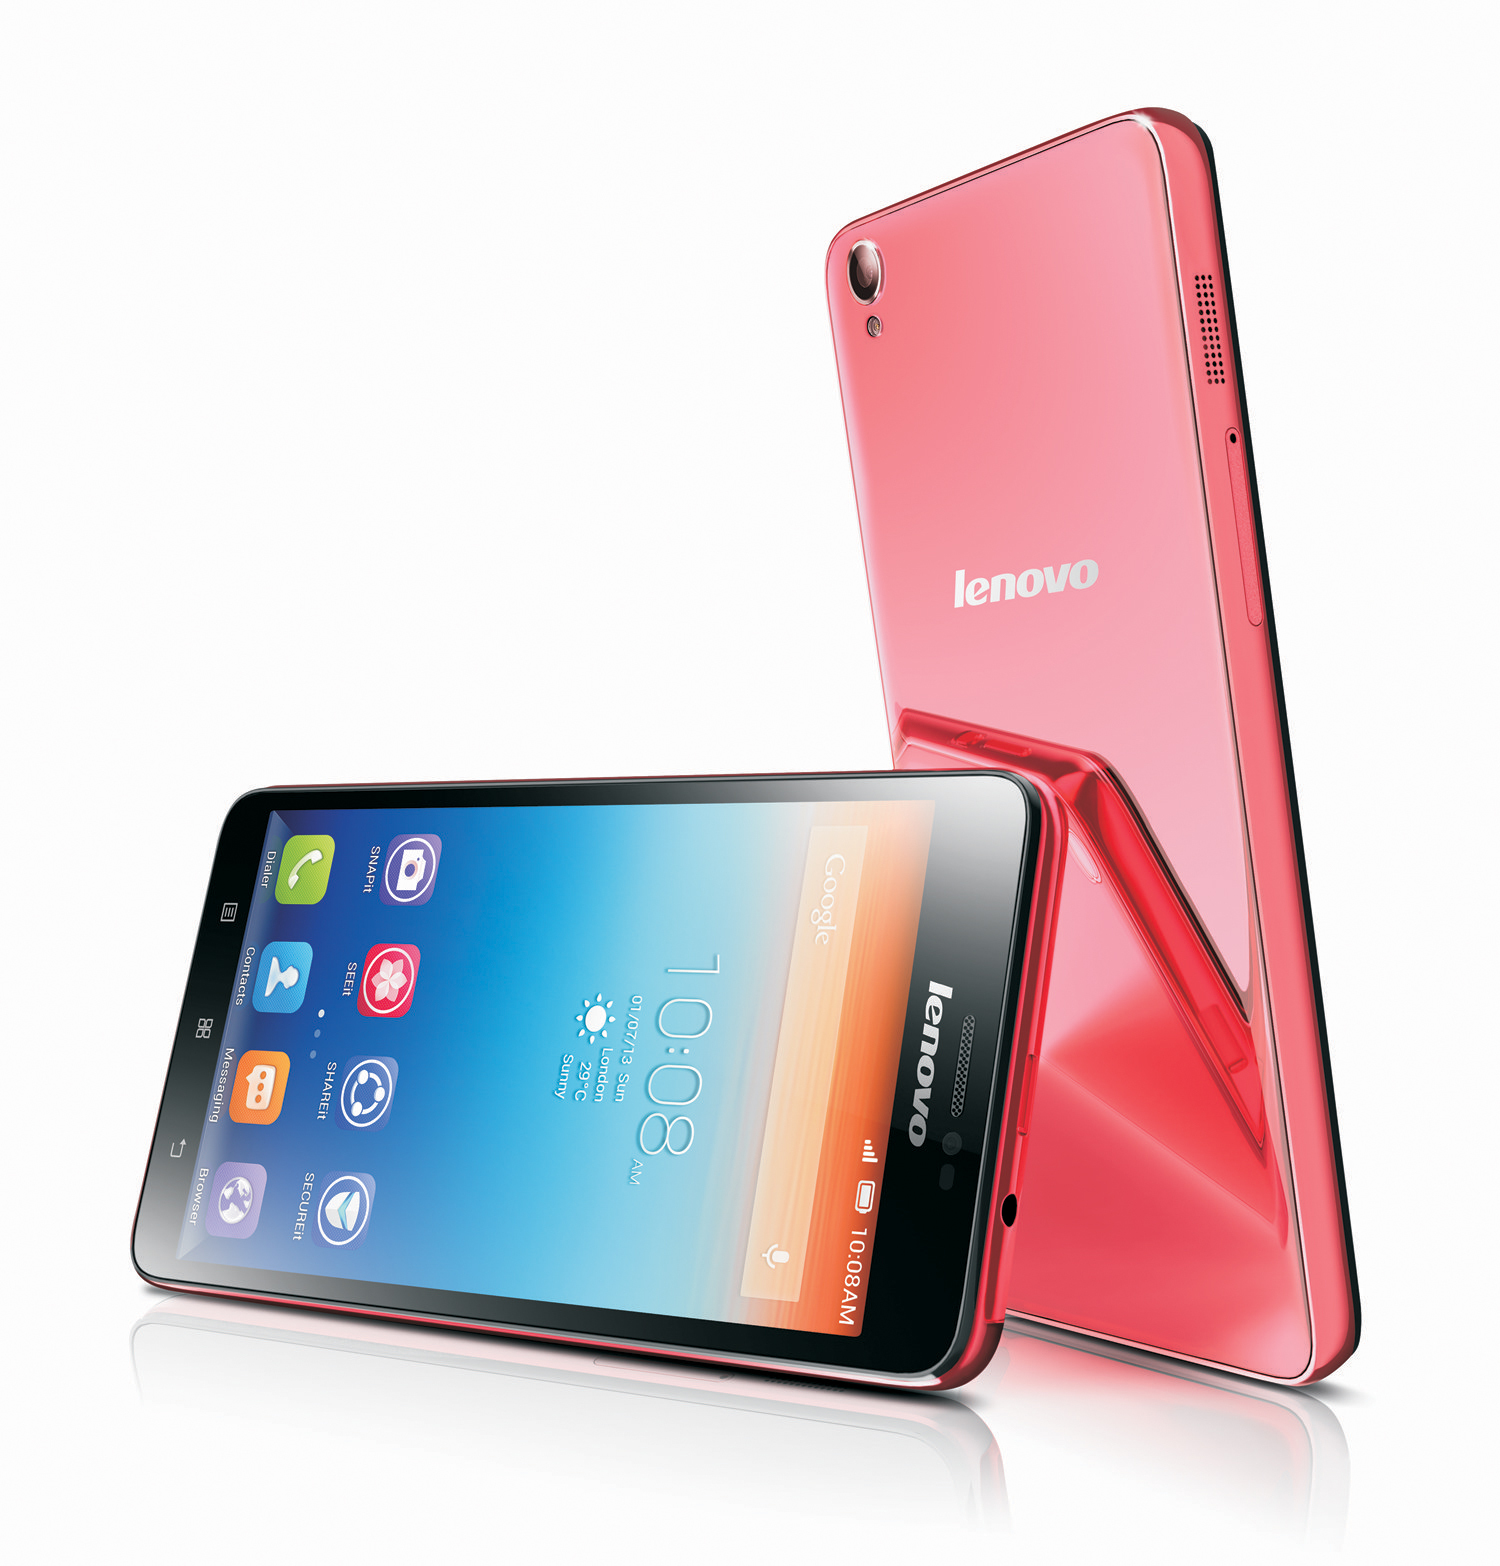 The new colorful S850 Lenovo smartphone is designed for fashion savvy consumers and shutterbugs. (Photo: Business Wire)